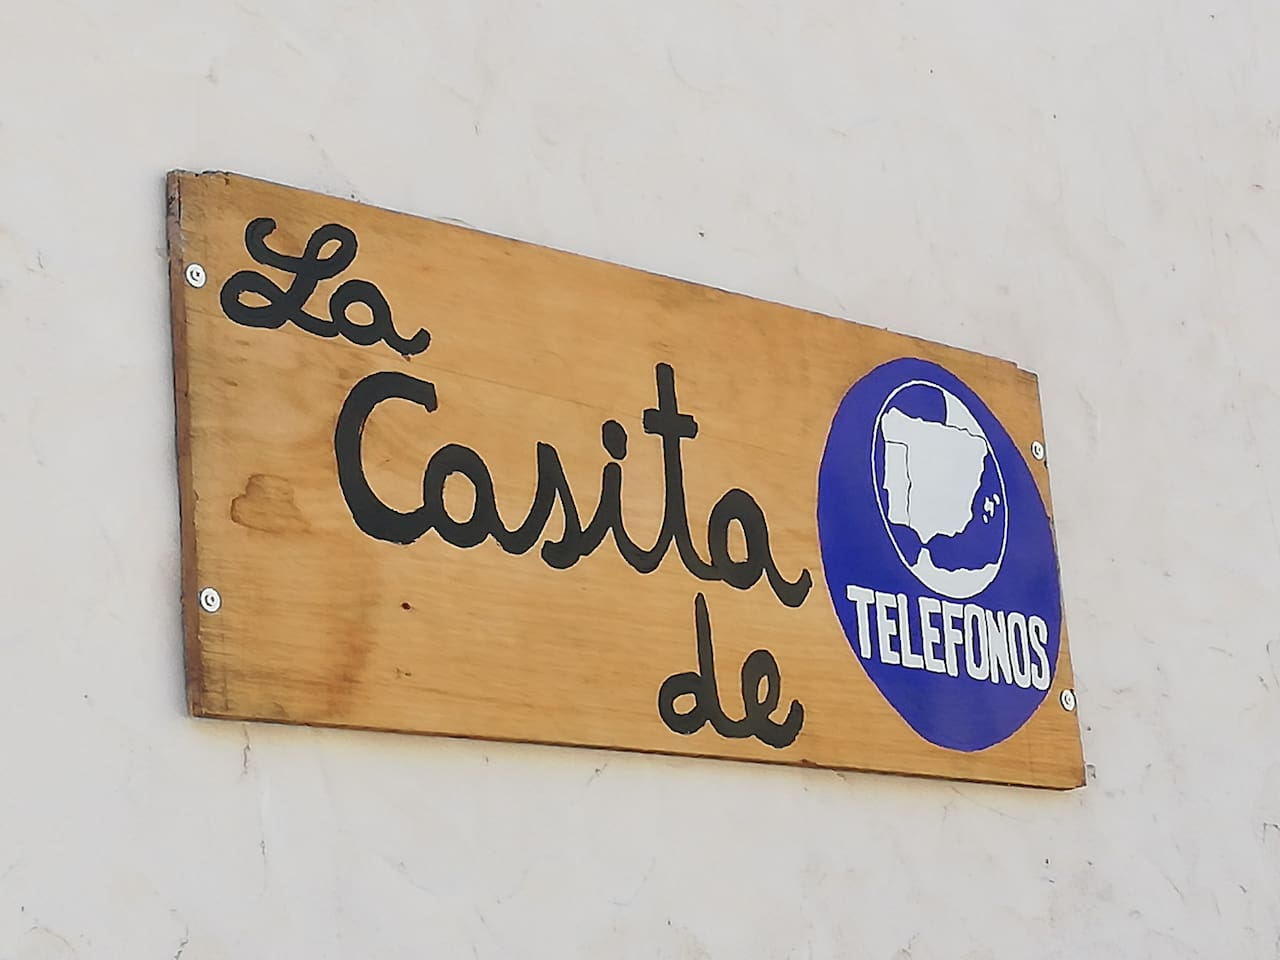 La casita de teléfonos, disconnect and enjoy